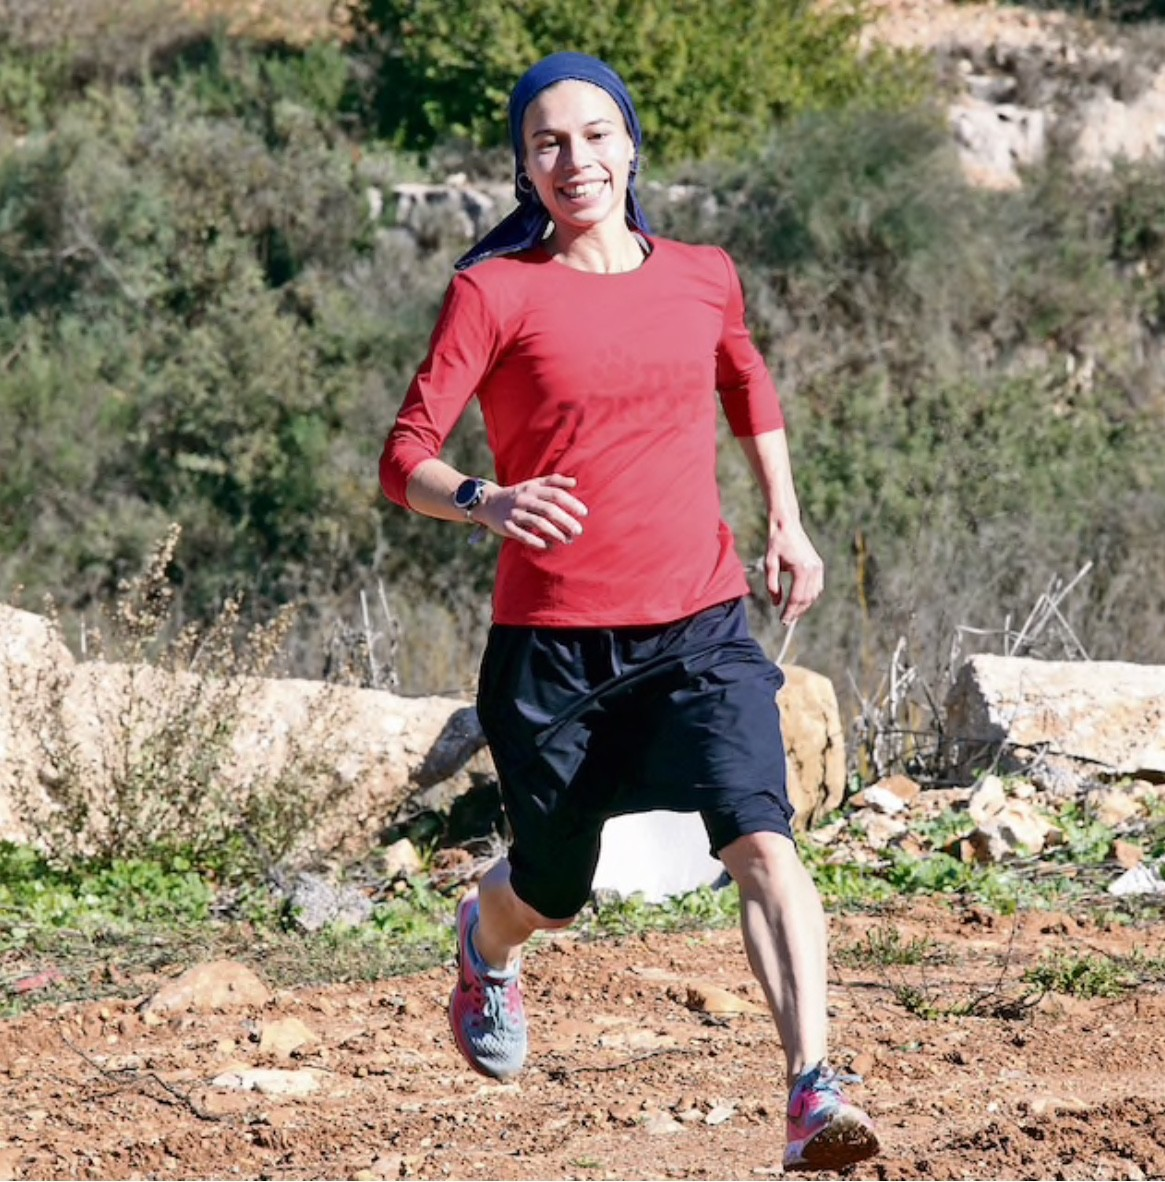 Bracha Deutsch a mother of five is Israel's most unlikely marathon runner